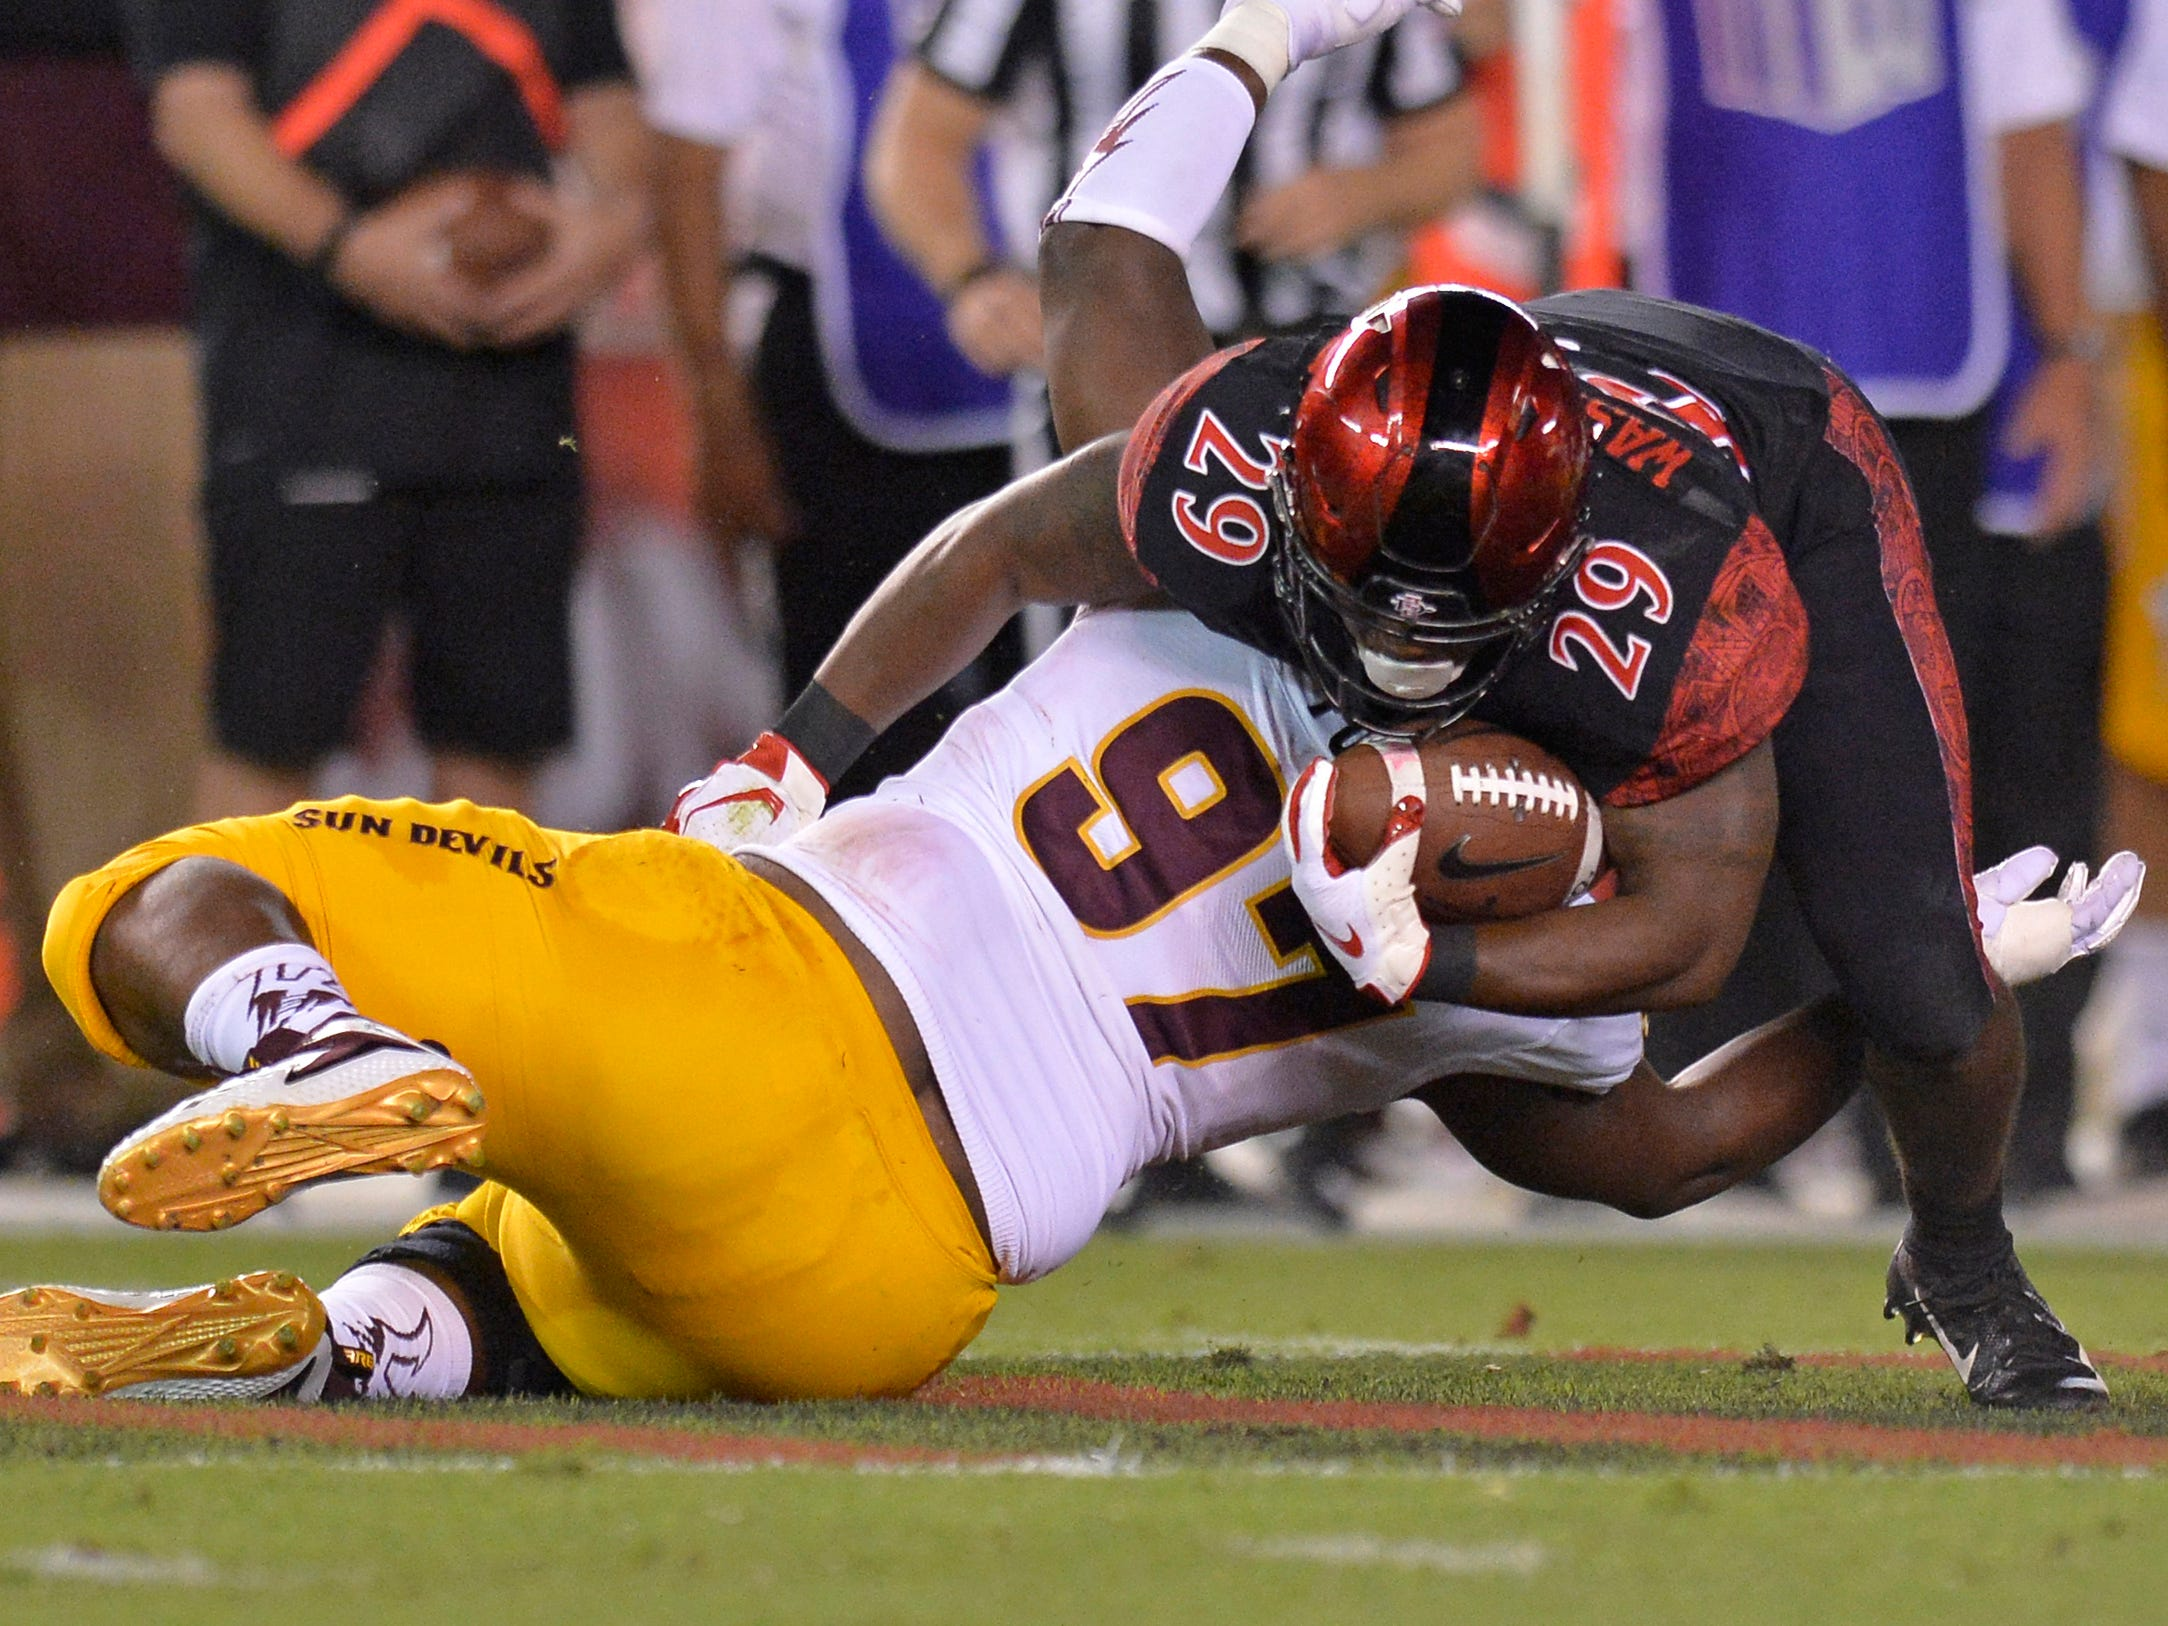 Sep 15, 2018; San Diego, CA, USA; San Diego State Aztecs running back Juwan Washington (29) is tackled by Arizona State Sun Devils defensive lineman Shannon Forman (97) during the first quarter at SDCCU Stadium. Mandatory Credit: Jake Roth-USA TODAY Sports